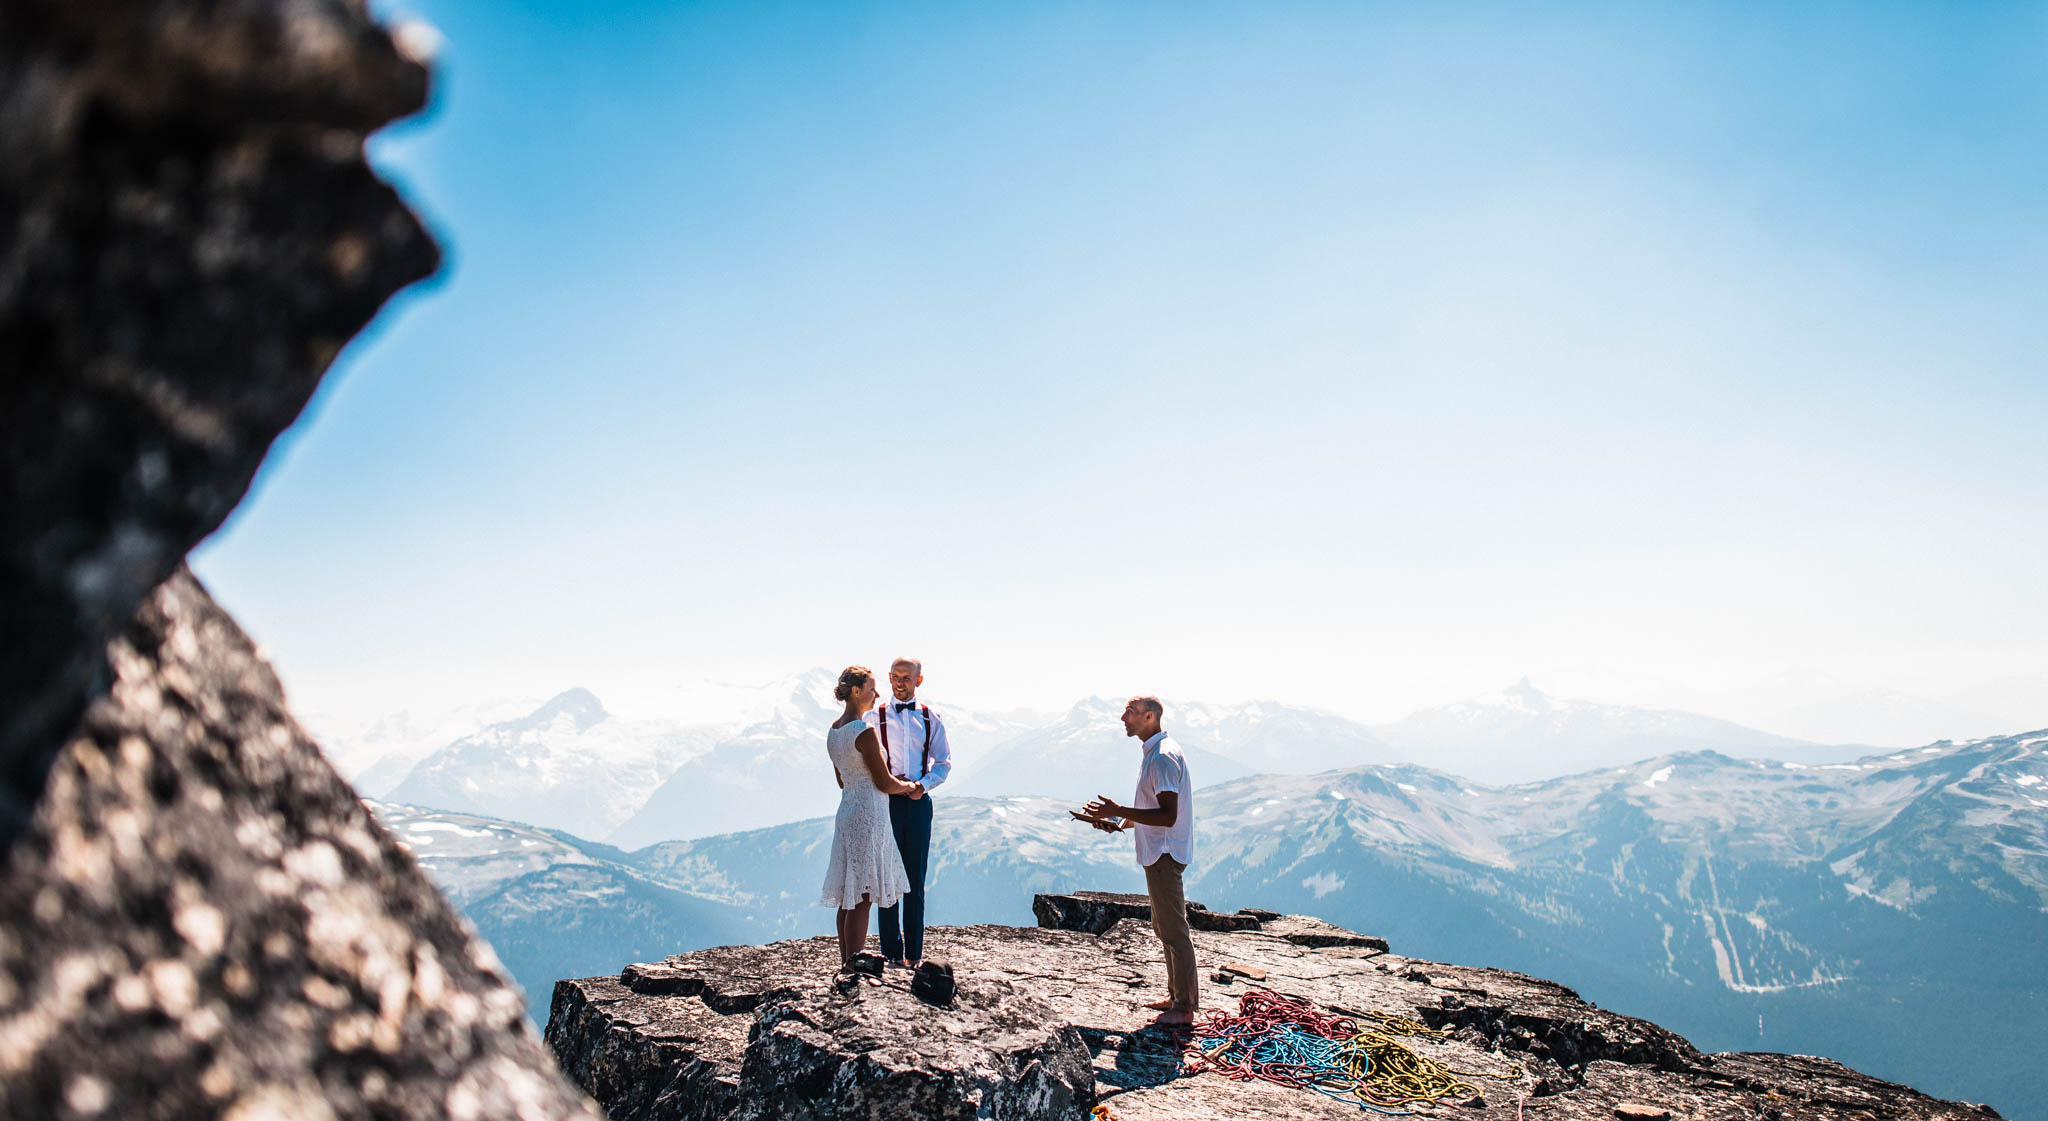 Rock Climbing Adventure Elopement - Whistler Weddings Photo by The Foxes